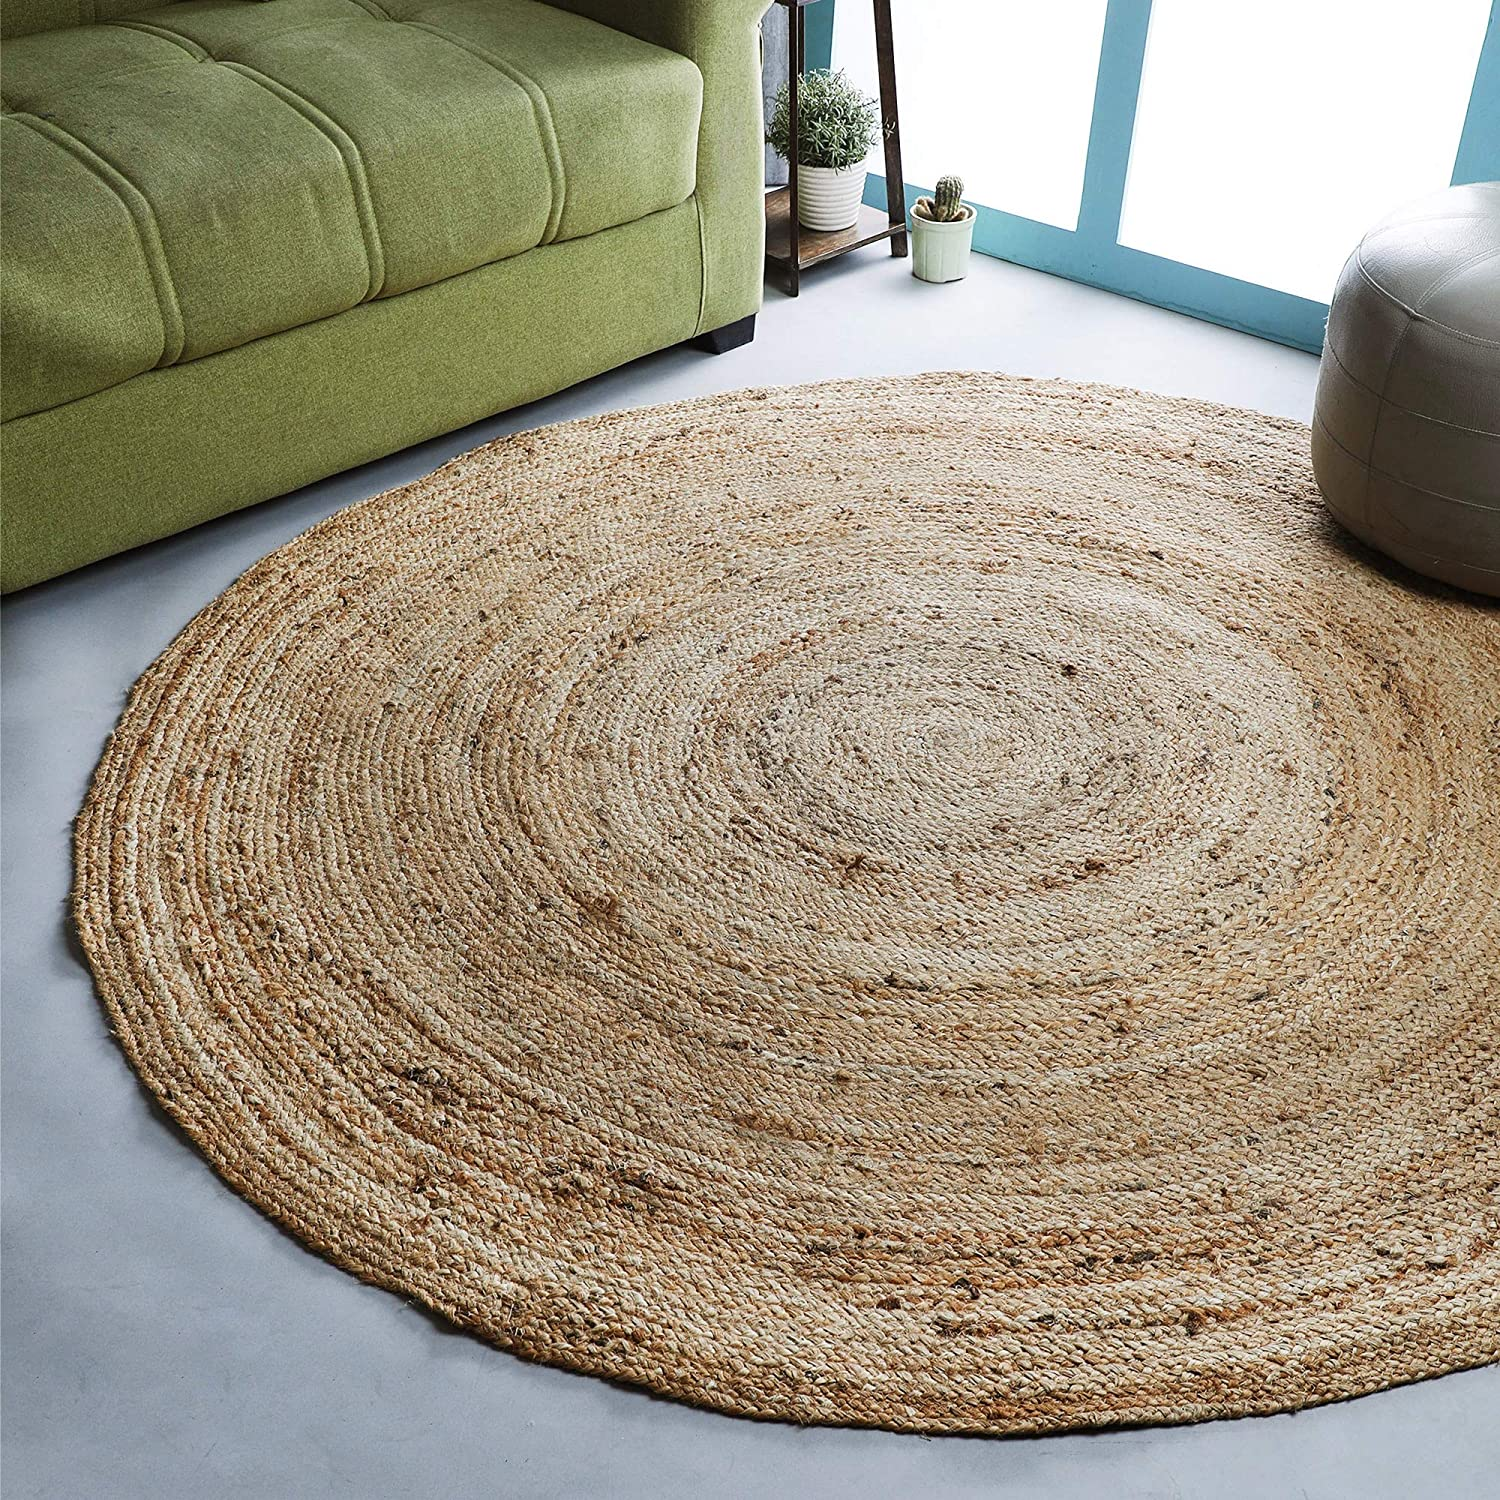 Ramanta Home Jute Braided Rug, 6' Round Natural, Hand Woven Reversible Rugs for Kitchen Living Room Entryway , 6 Feet Round